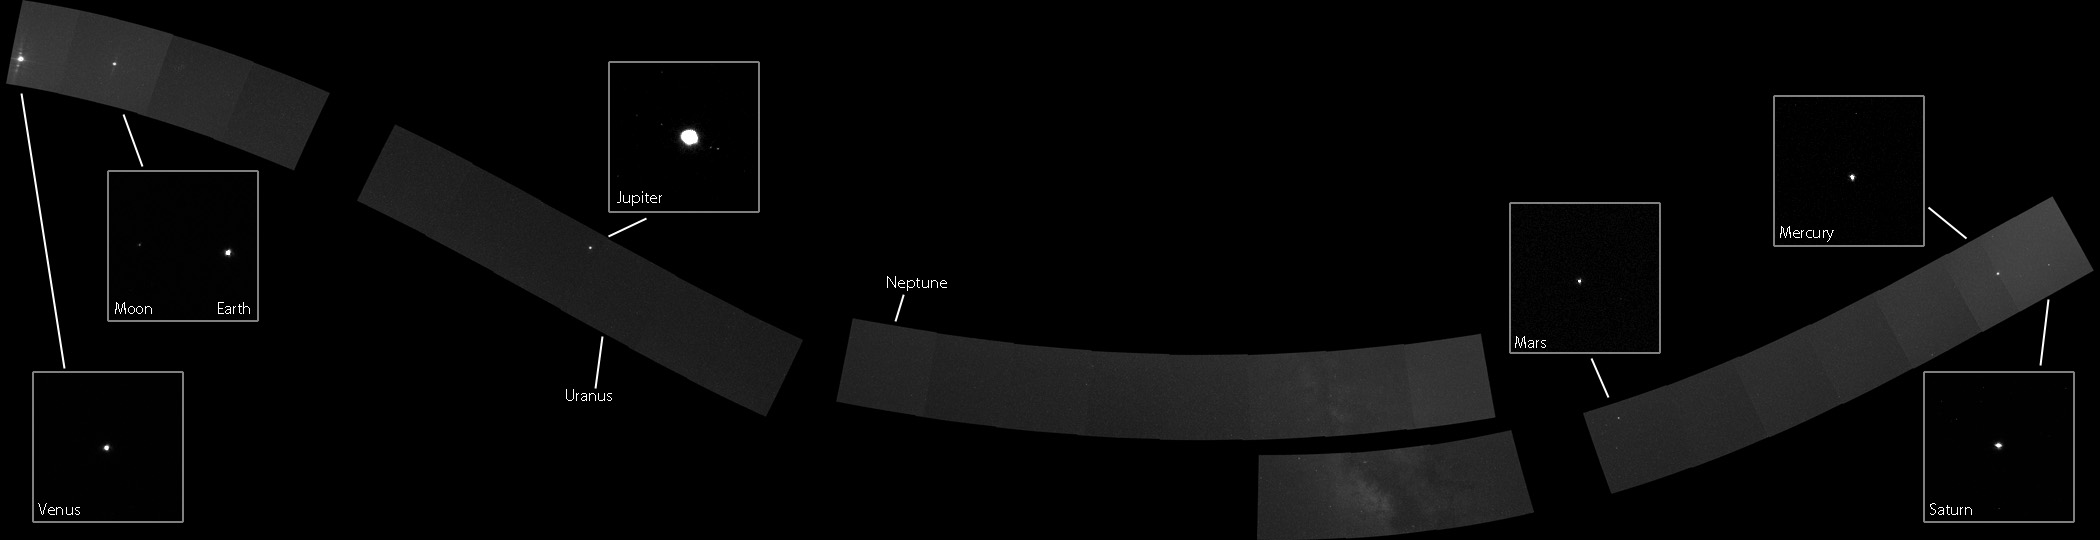 The MESSENGER spacecraft has captured the first portrait of our Solar System from the inside looking out.